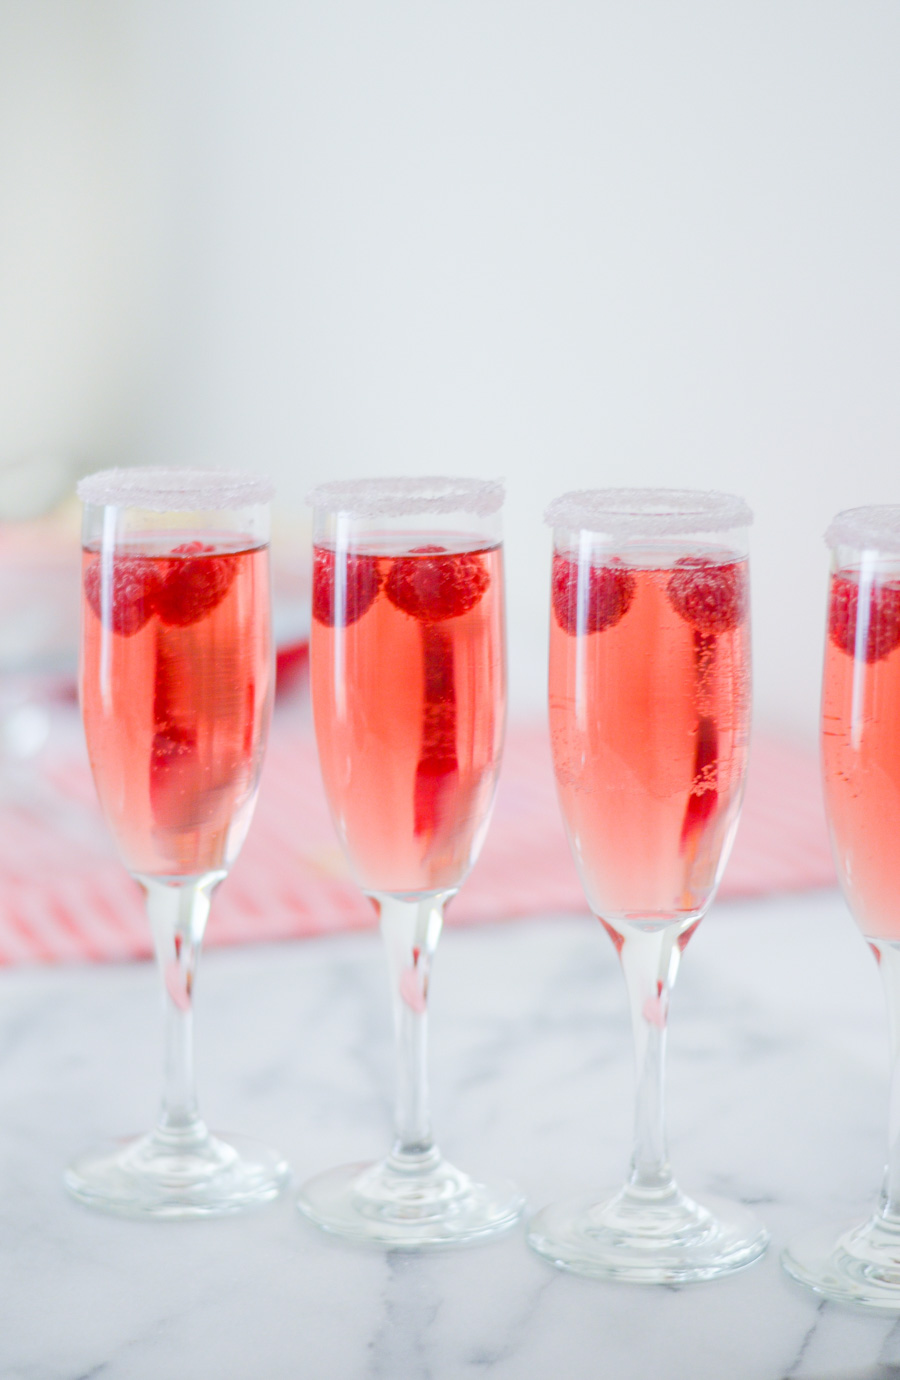 Rosé Cocktail w. Raspberries